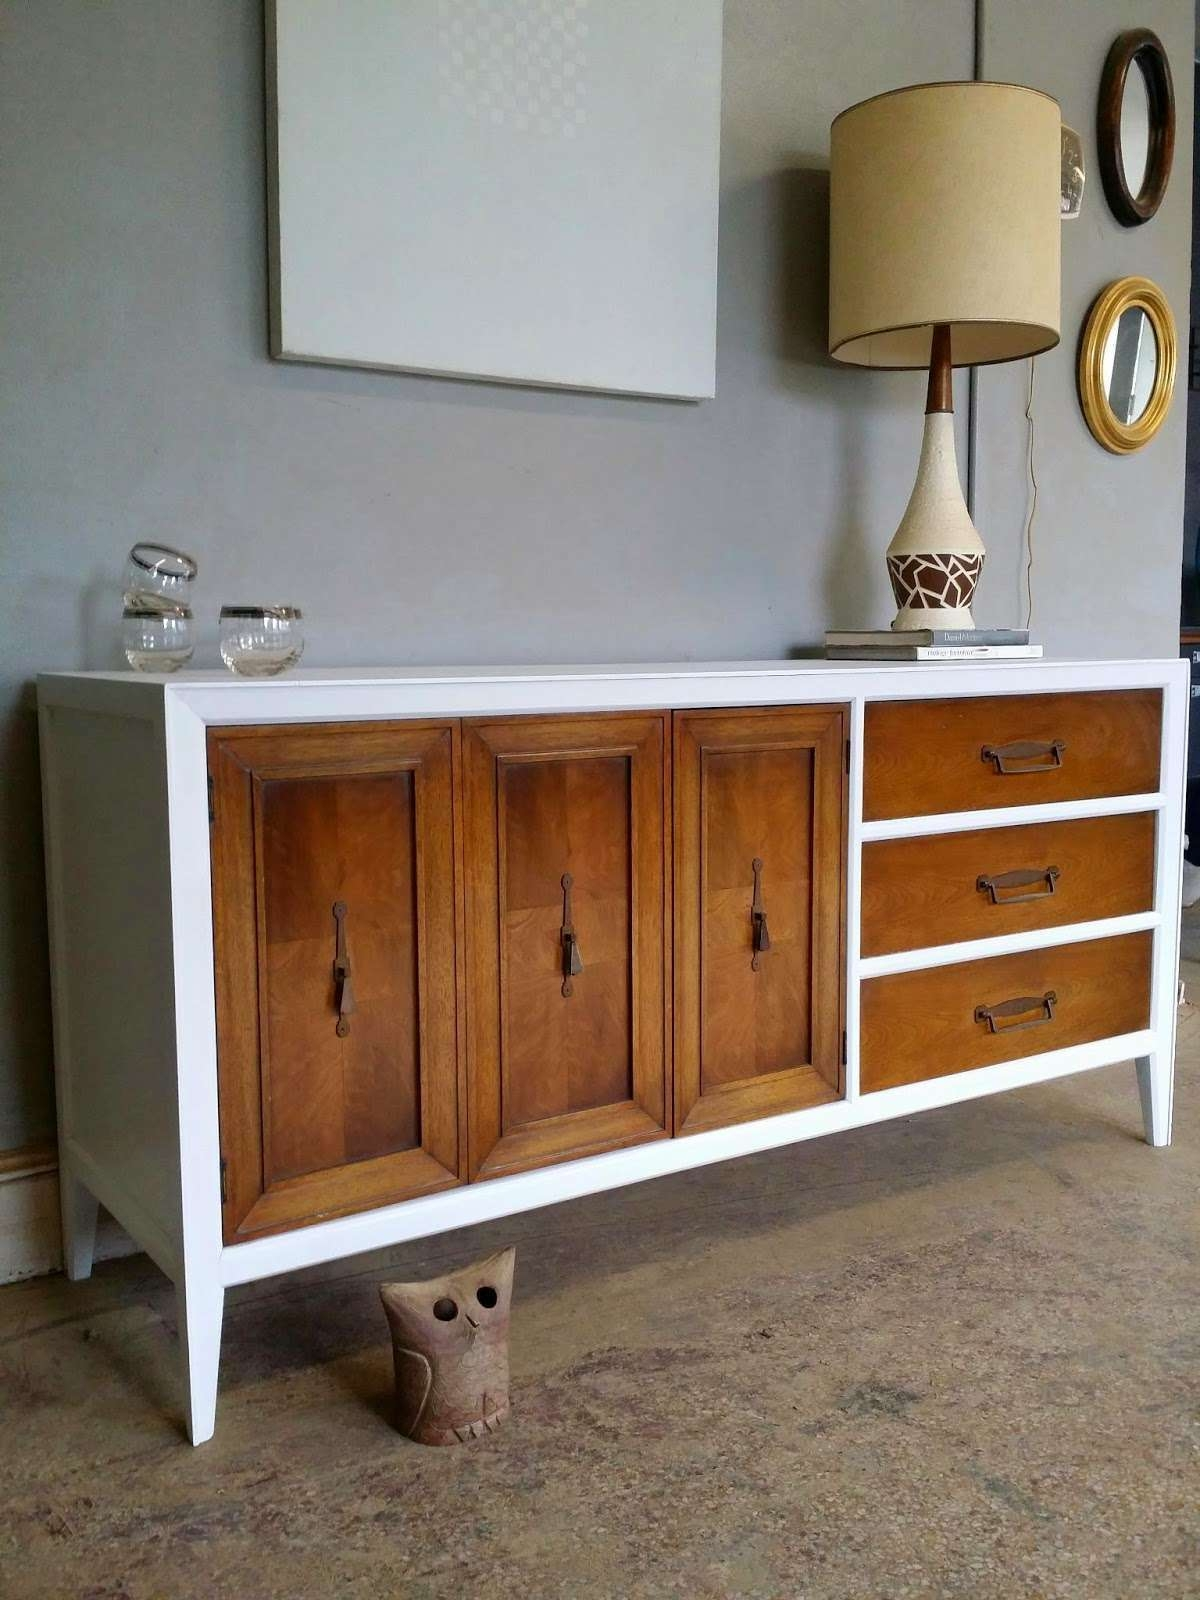 2018 Latest White Wood Sideboards Intended For Media Sideboards (View 11 of 20)